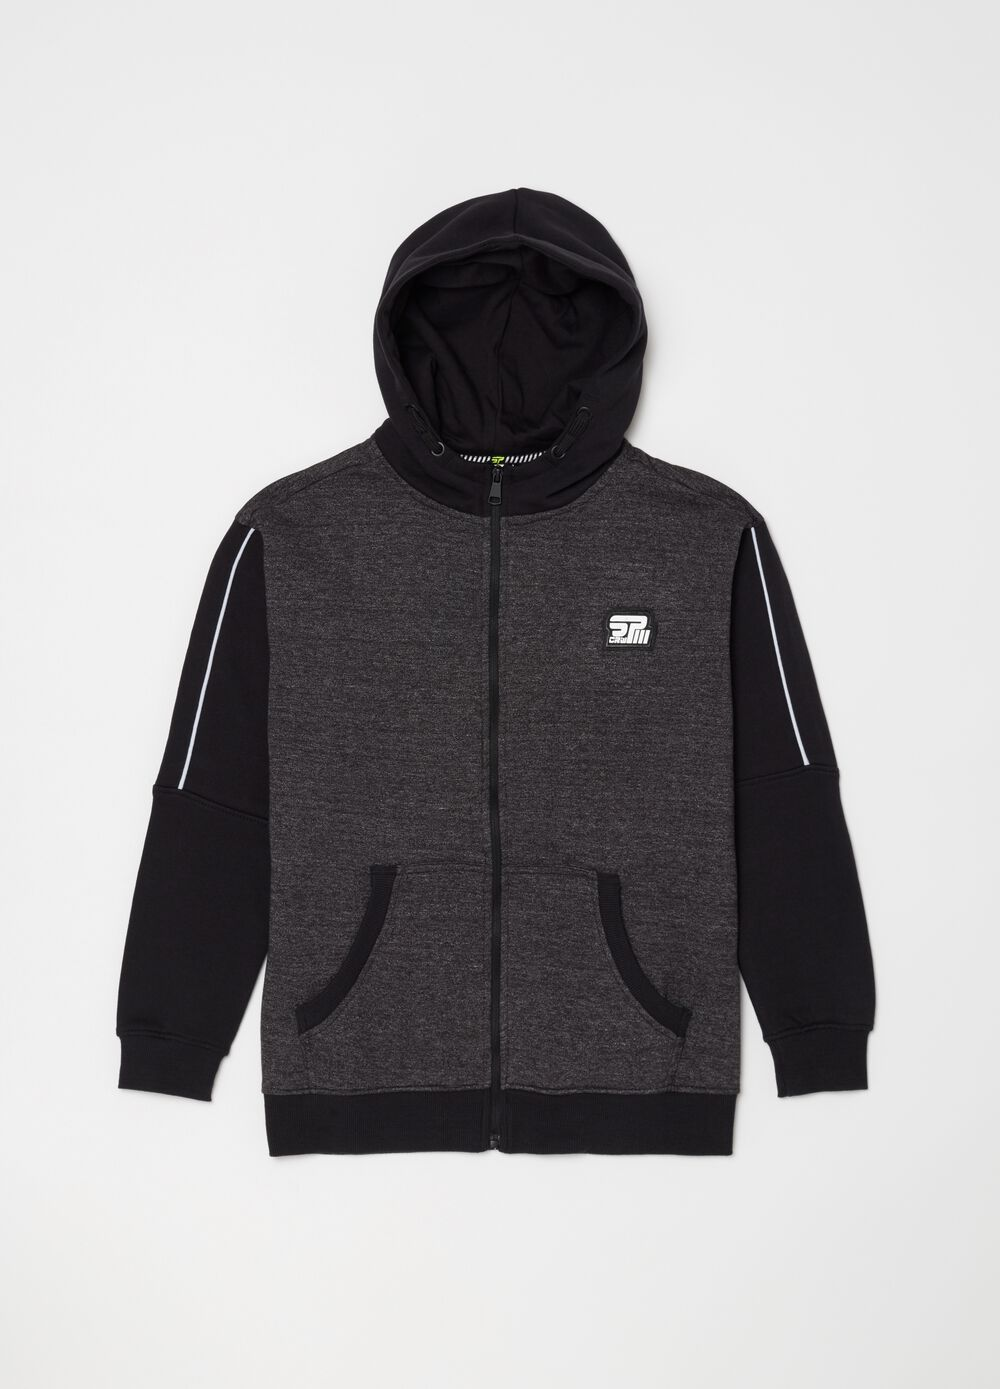 Two-tone sweatshirt with hood and zip